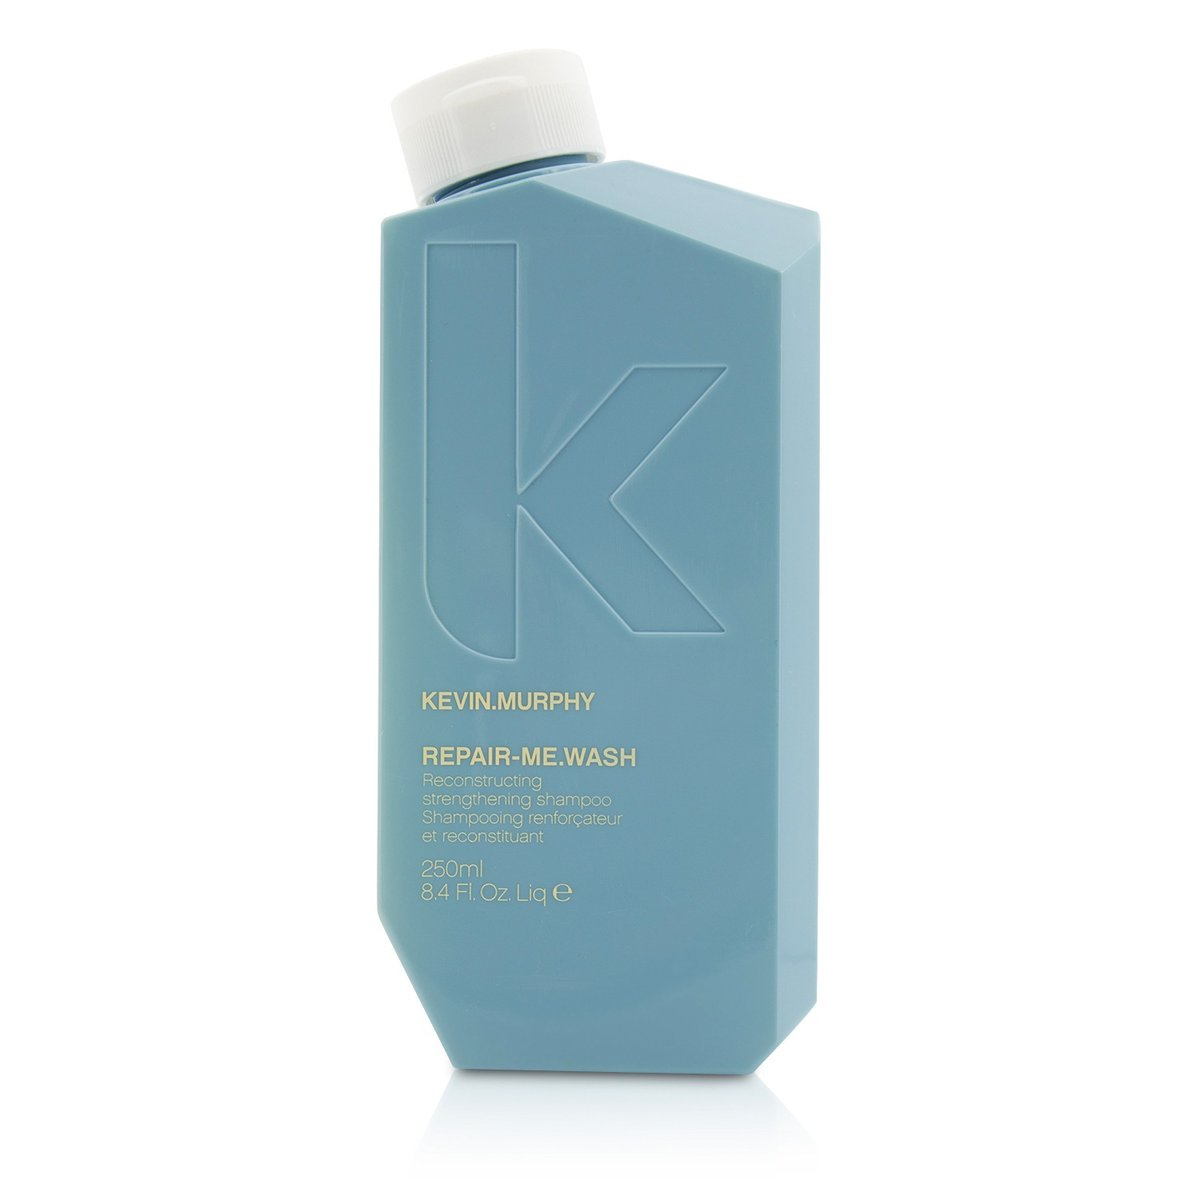 Repair-Me.Wash (Reconstructing Stregthening Shampoo)  -[Parallel Import Product]